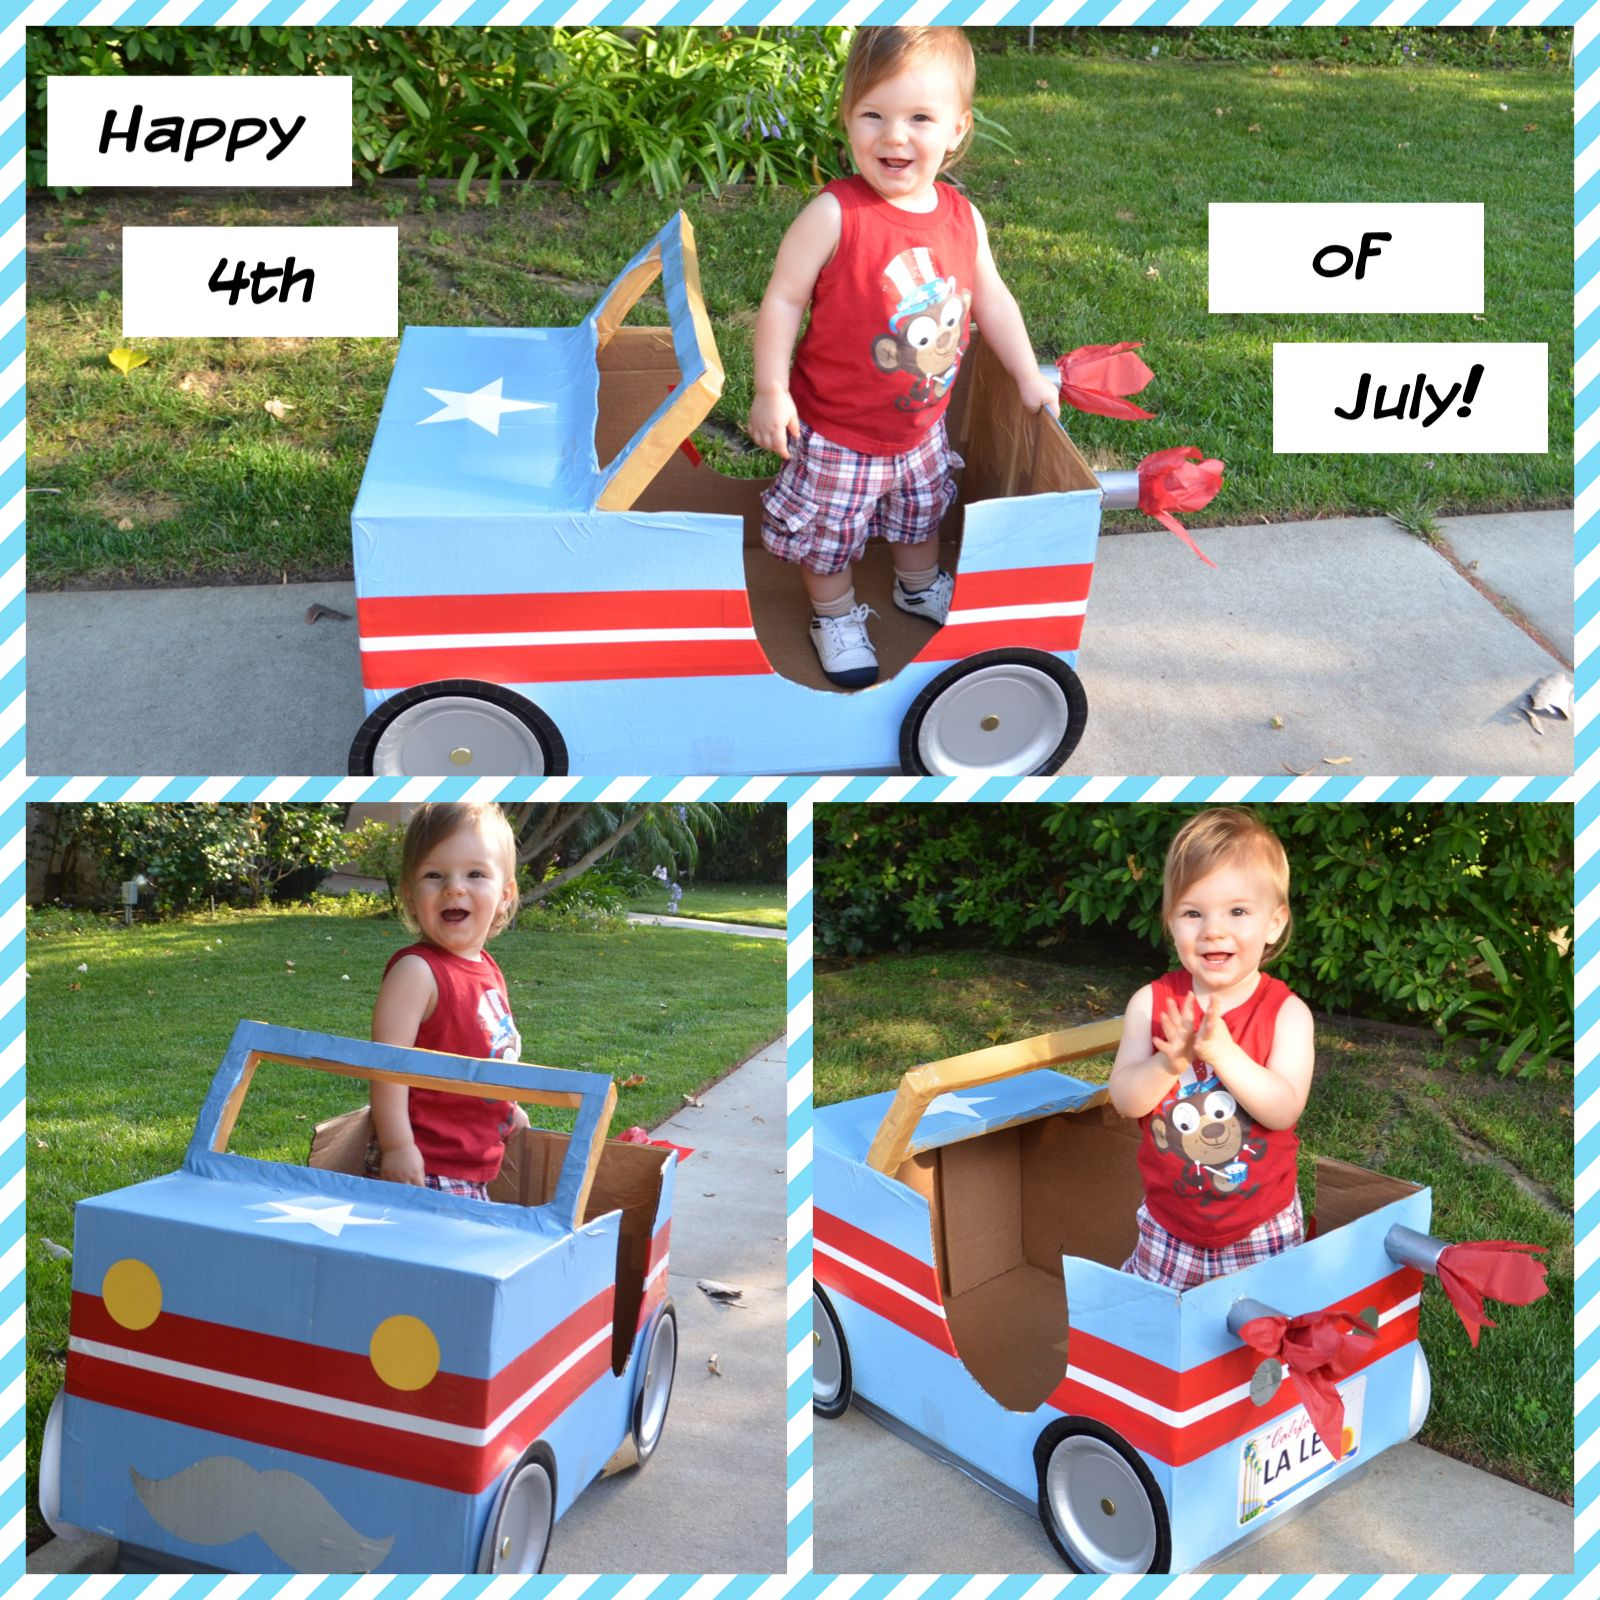 10 Ideas About Cardboard Box Cars On Pinterest: How To Make A Cardboard Box Car... Step By Step Tutorial